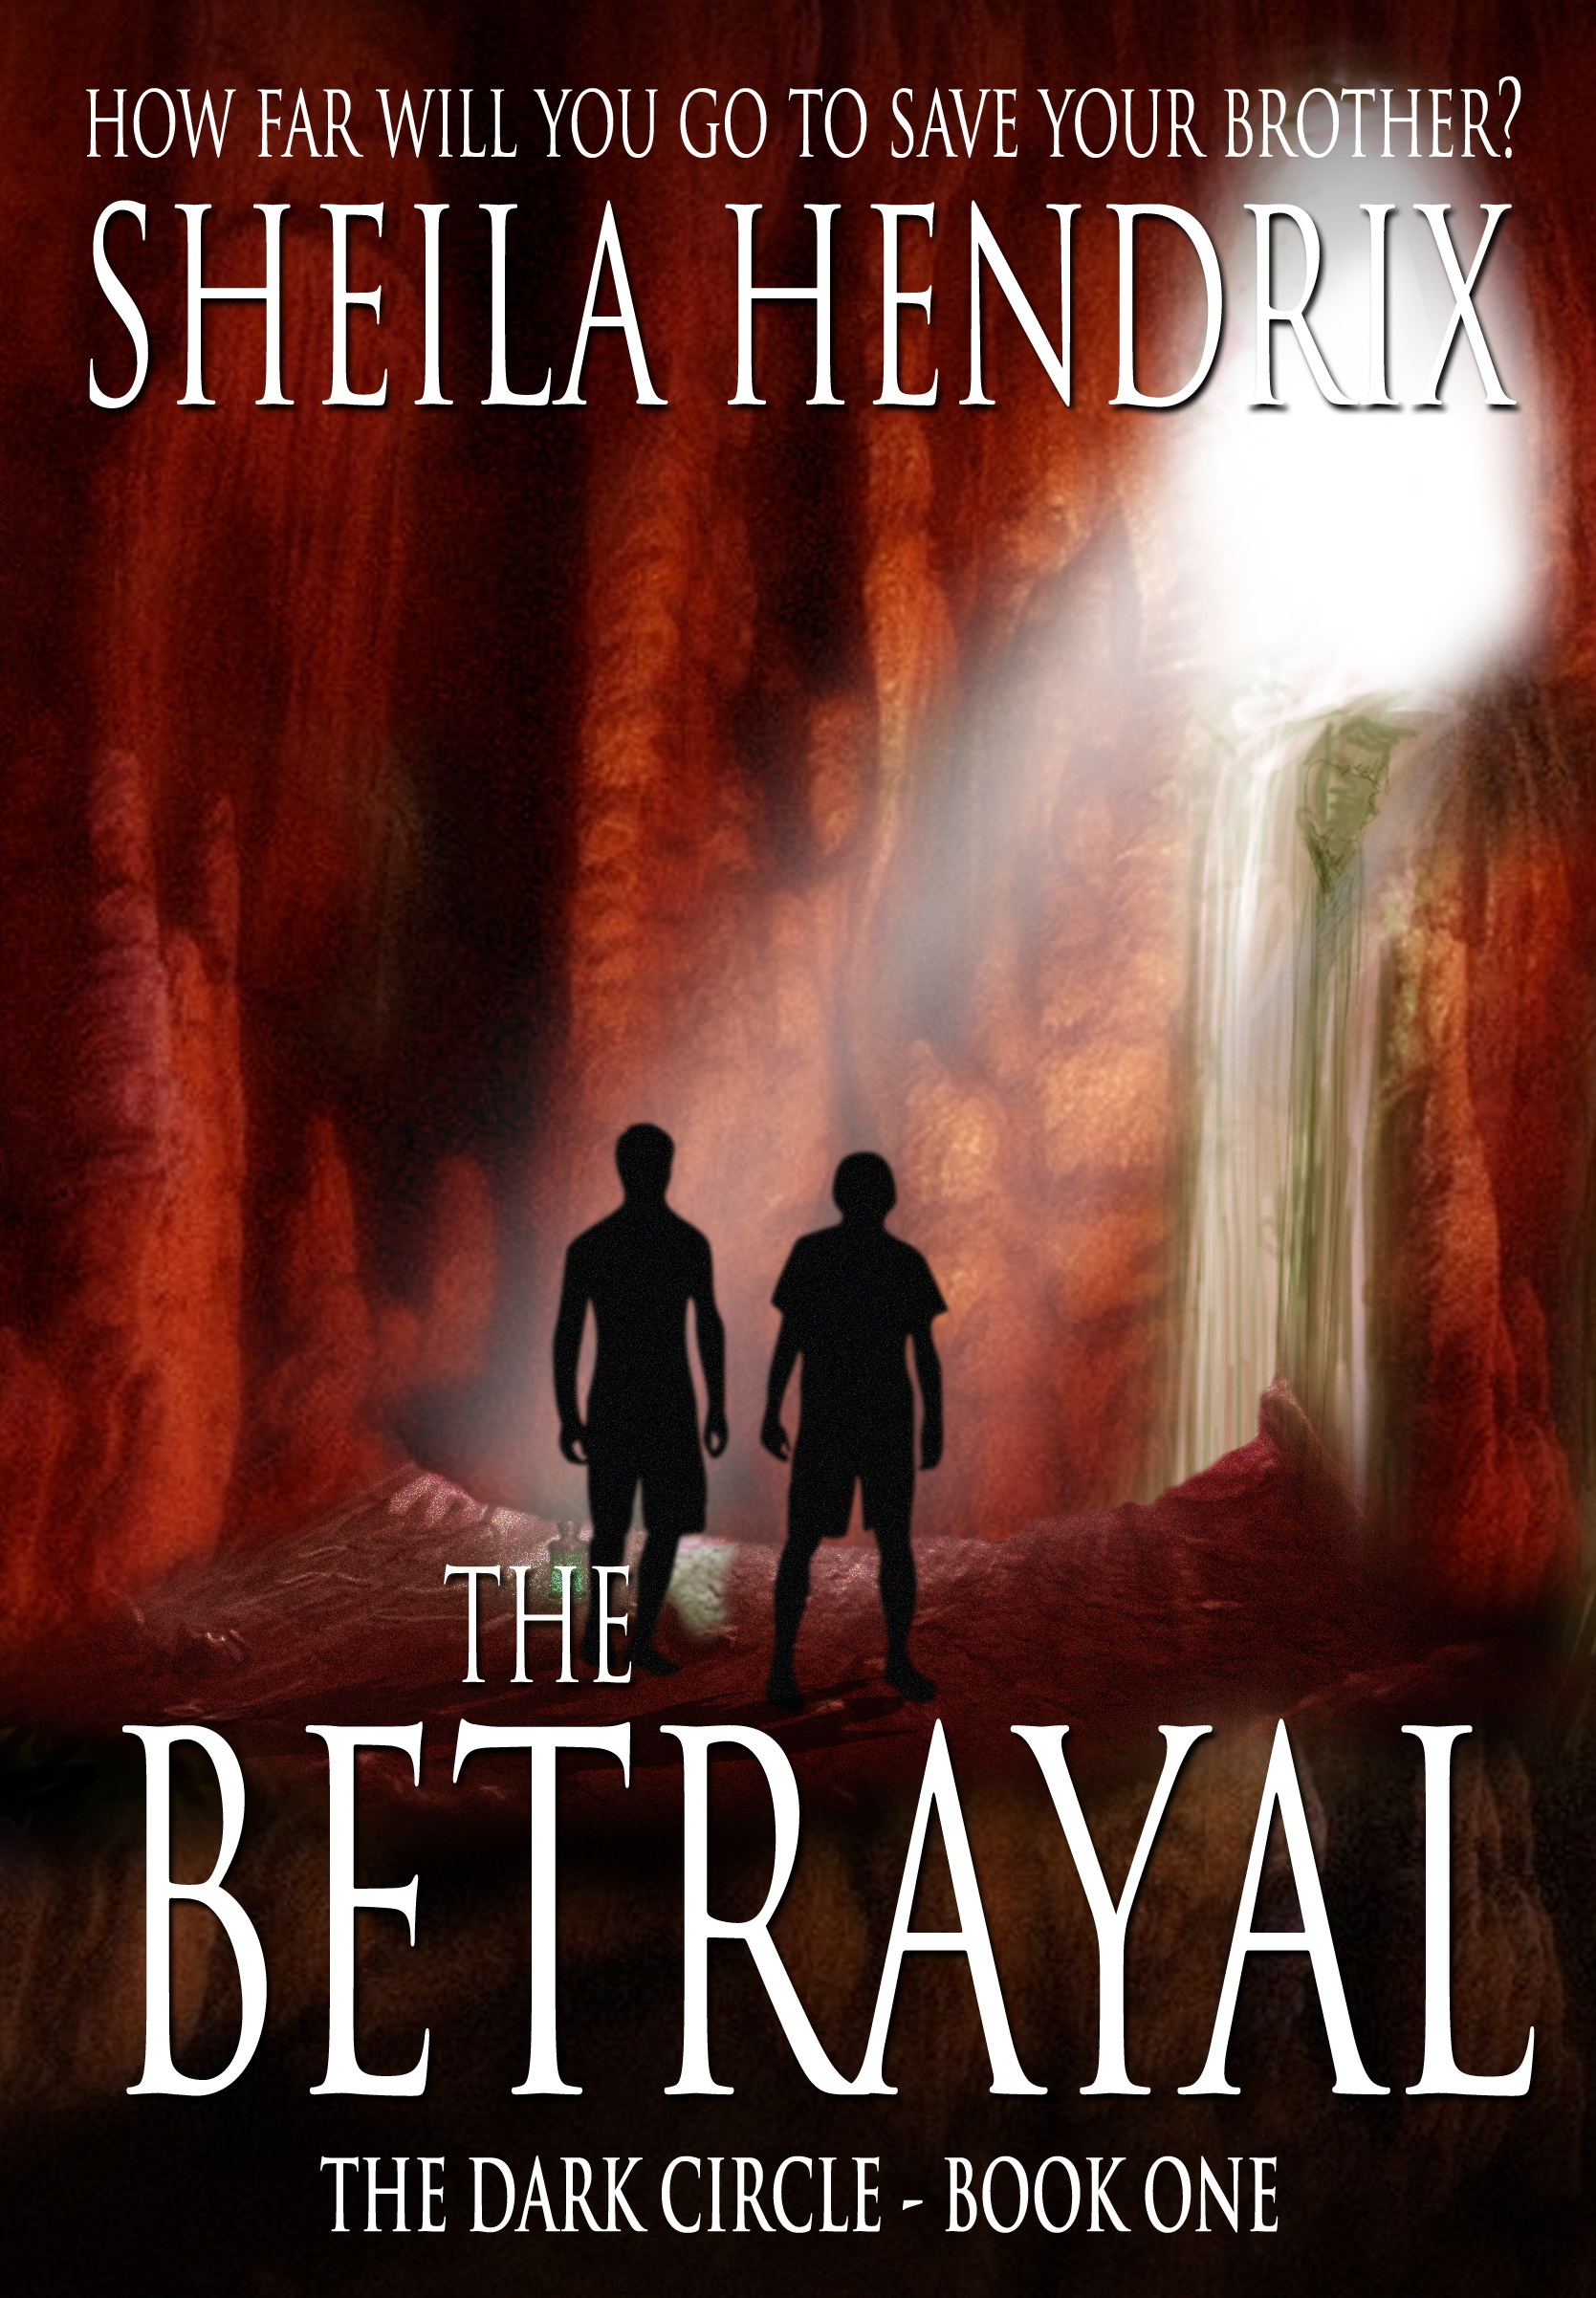 New Cover, for The Betrayal